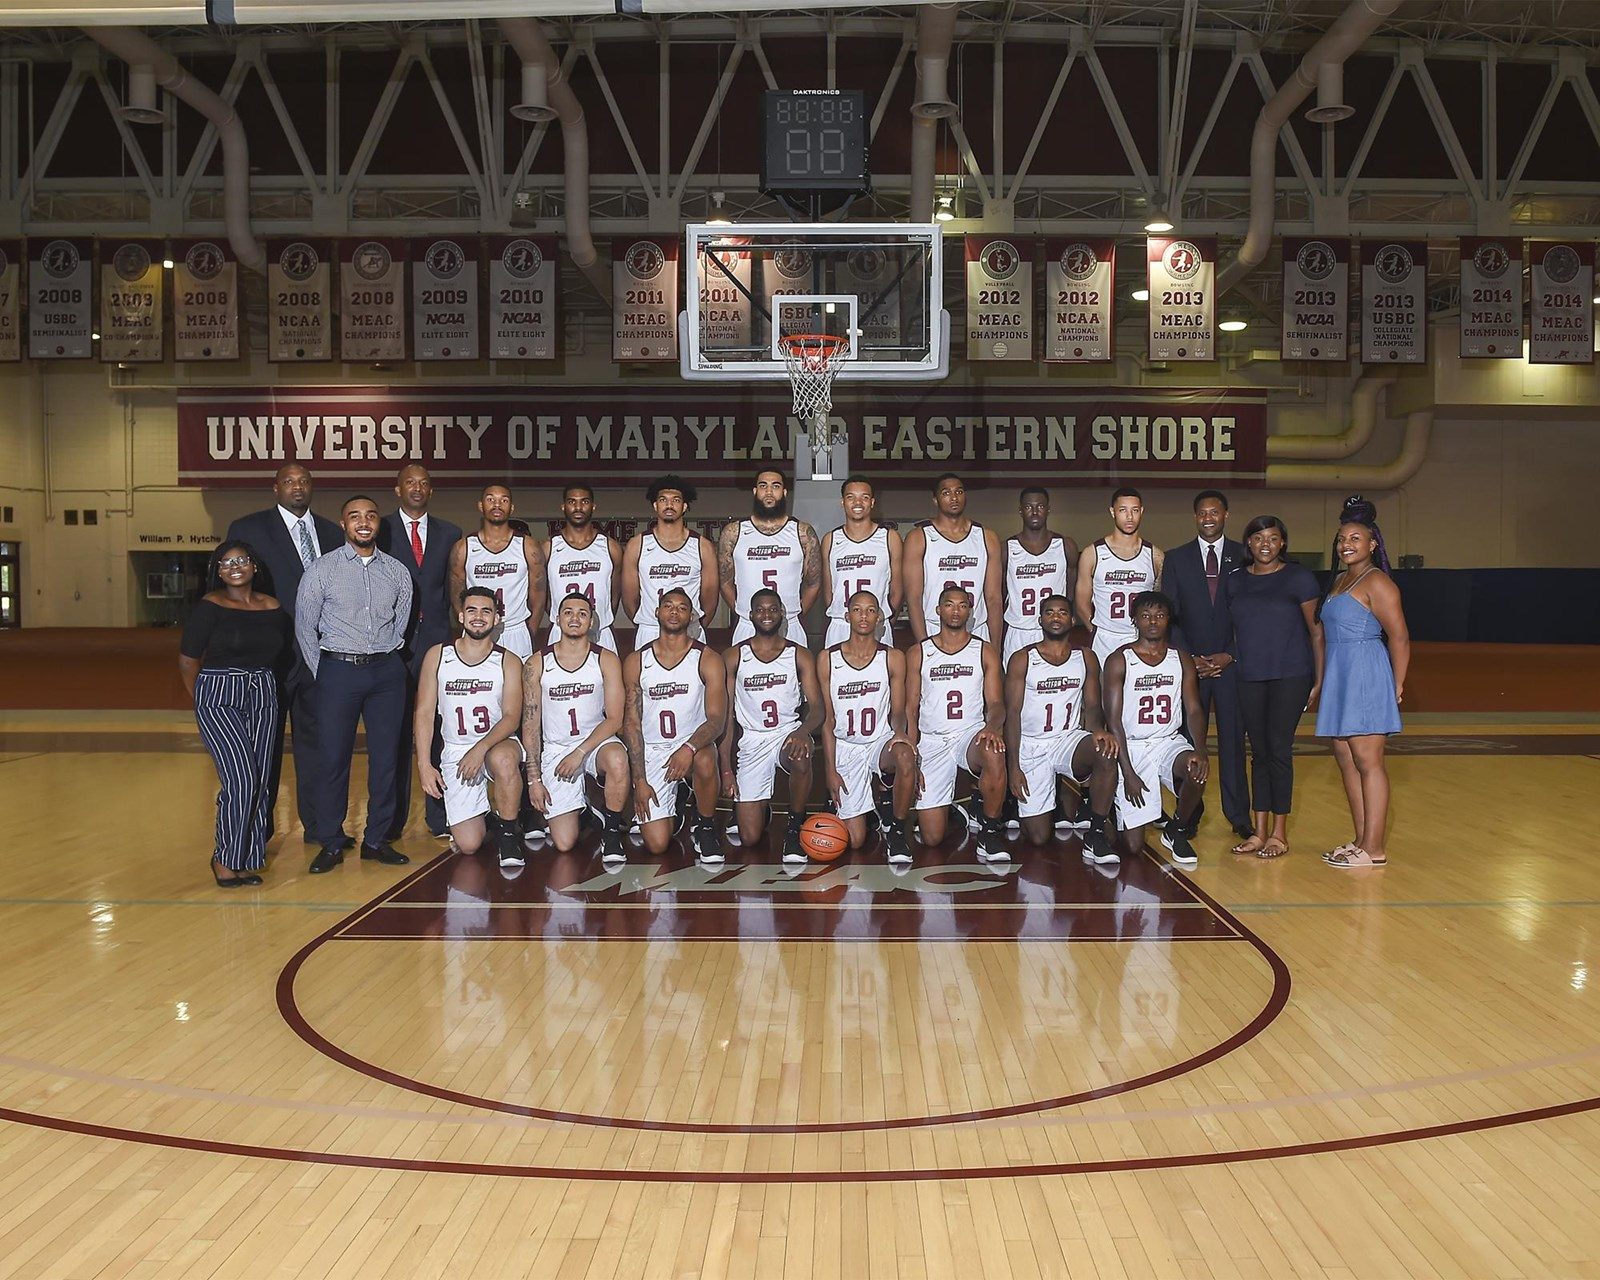 2018-19 men's basketball roster - university of maryland eastern